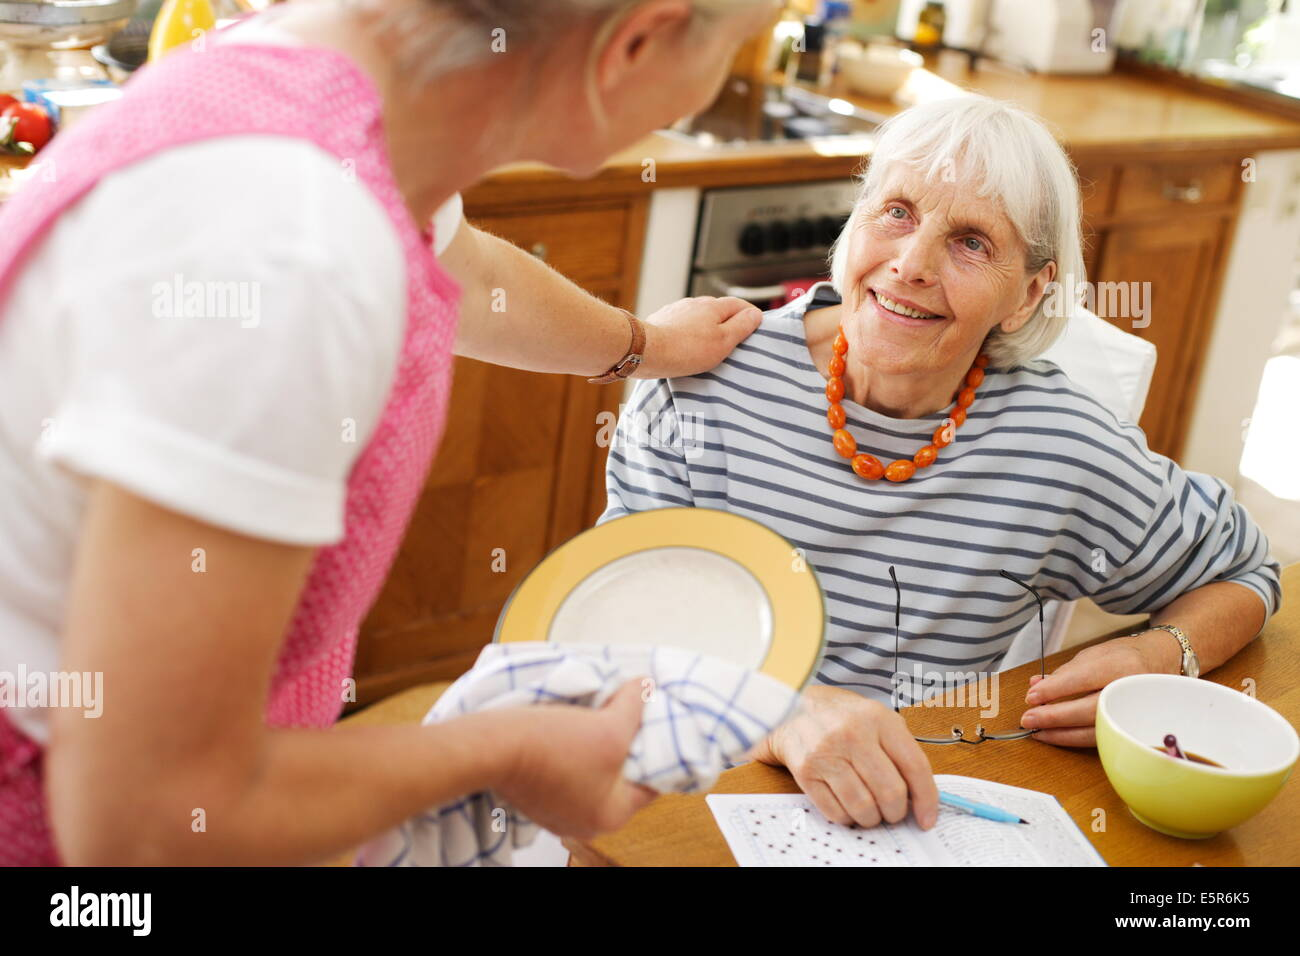 80 year old woman with a home care attendant. - Stock Image